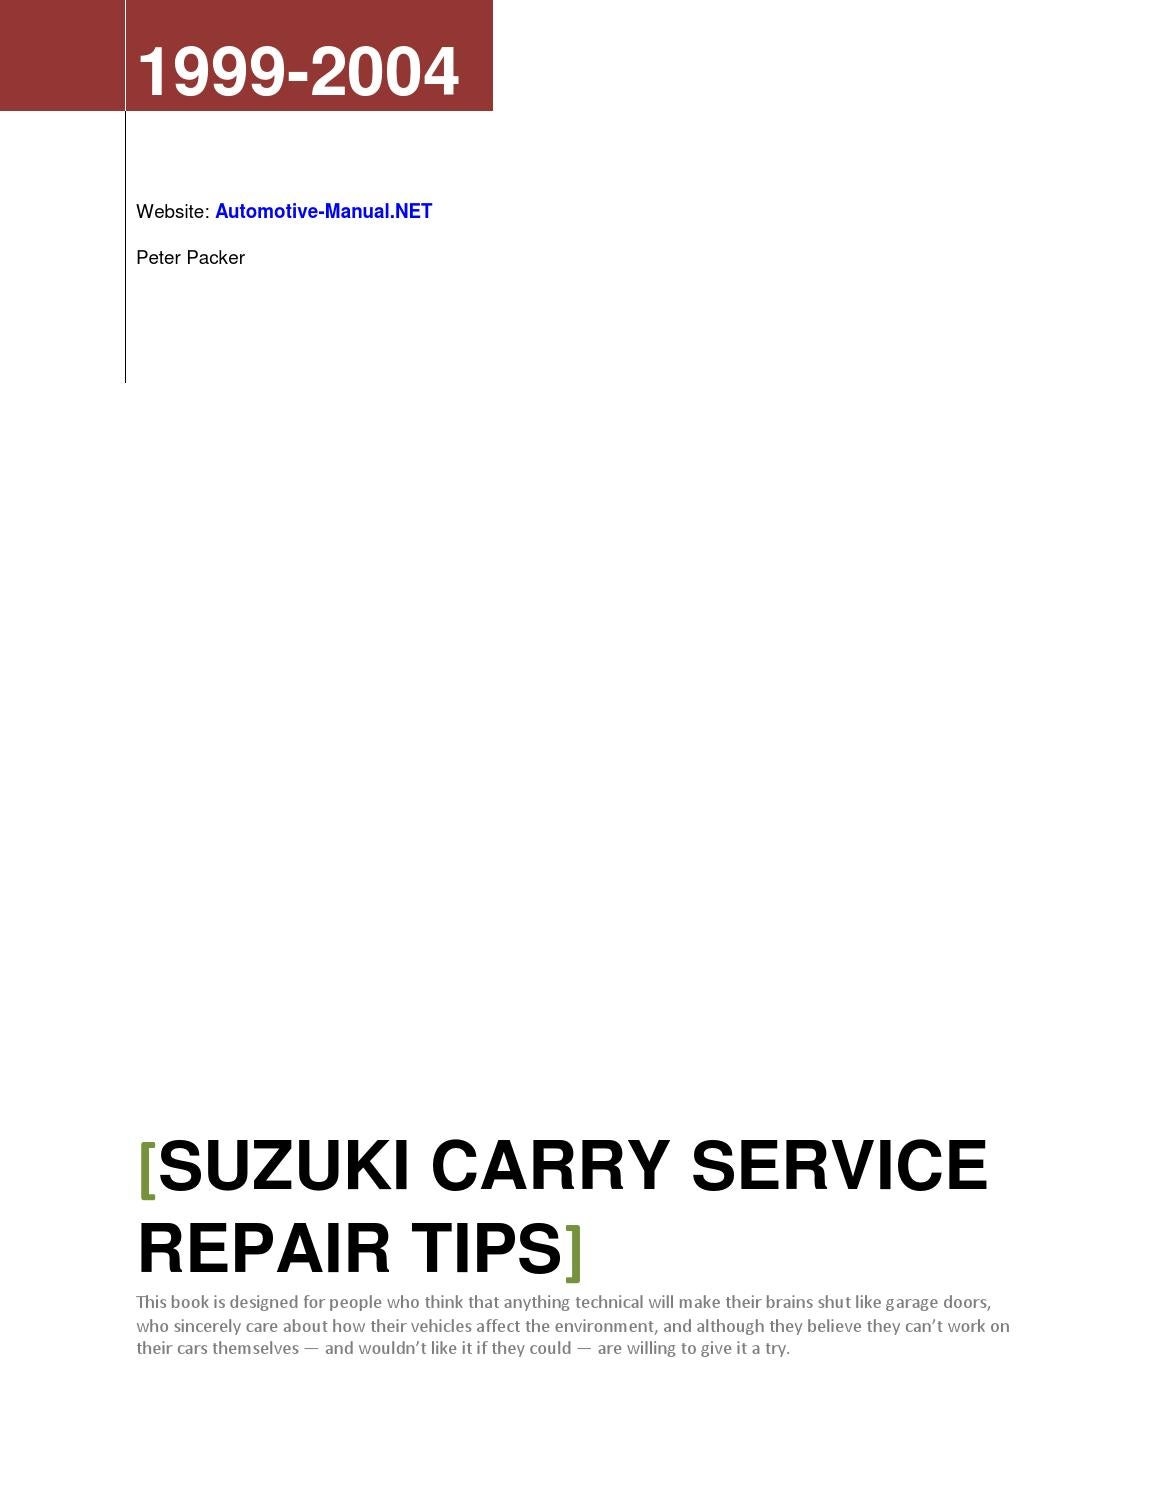 hight resolution of suzuki carry 1999 2004 service repair tips by armando oliver issuu